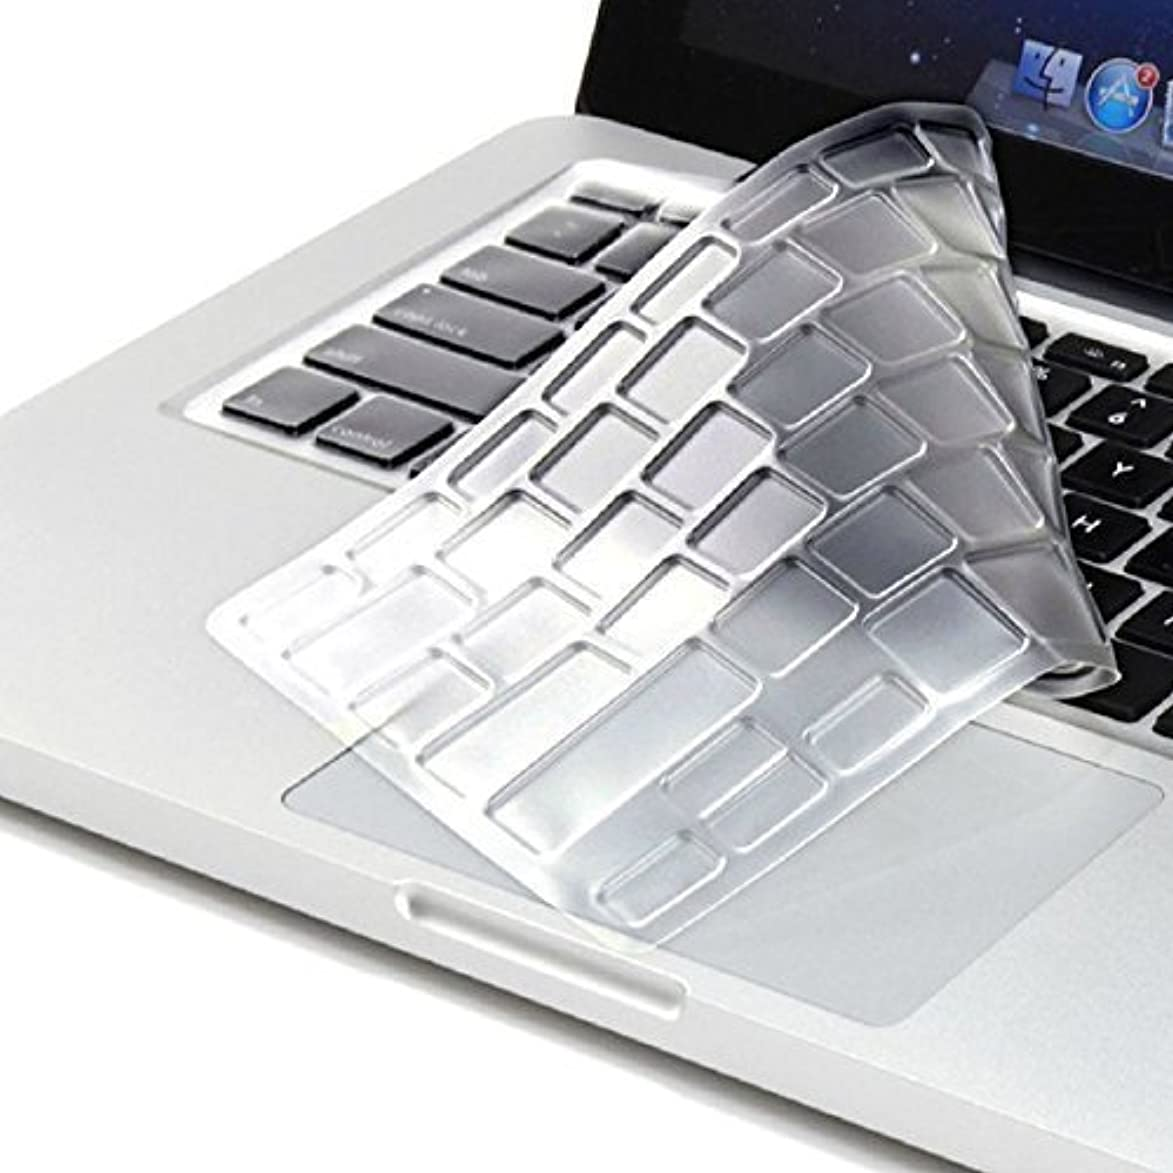 Leze - Ultra Thin Laptop Keyboard Cover Skin Protector for 11.6